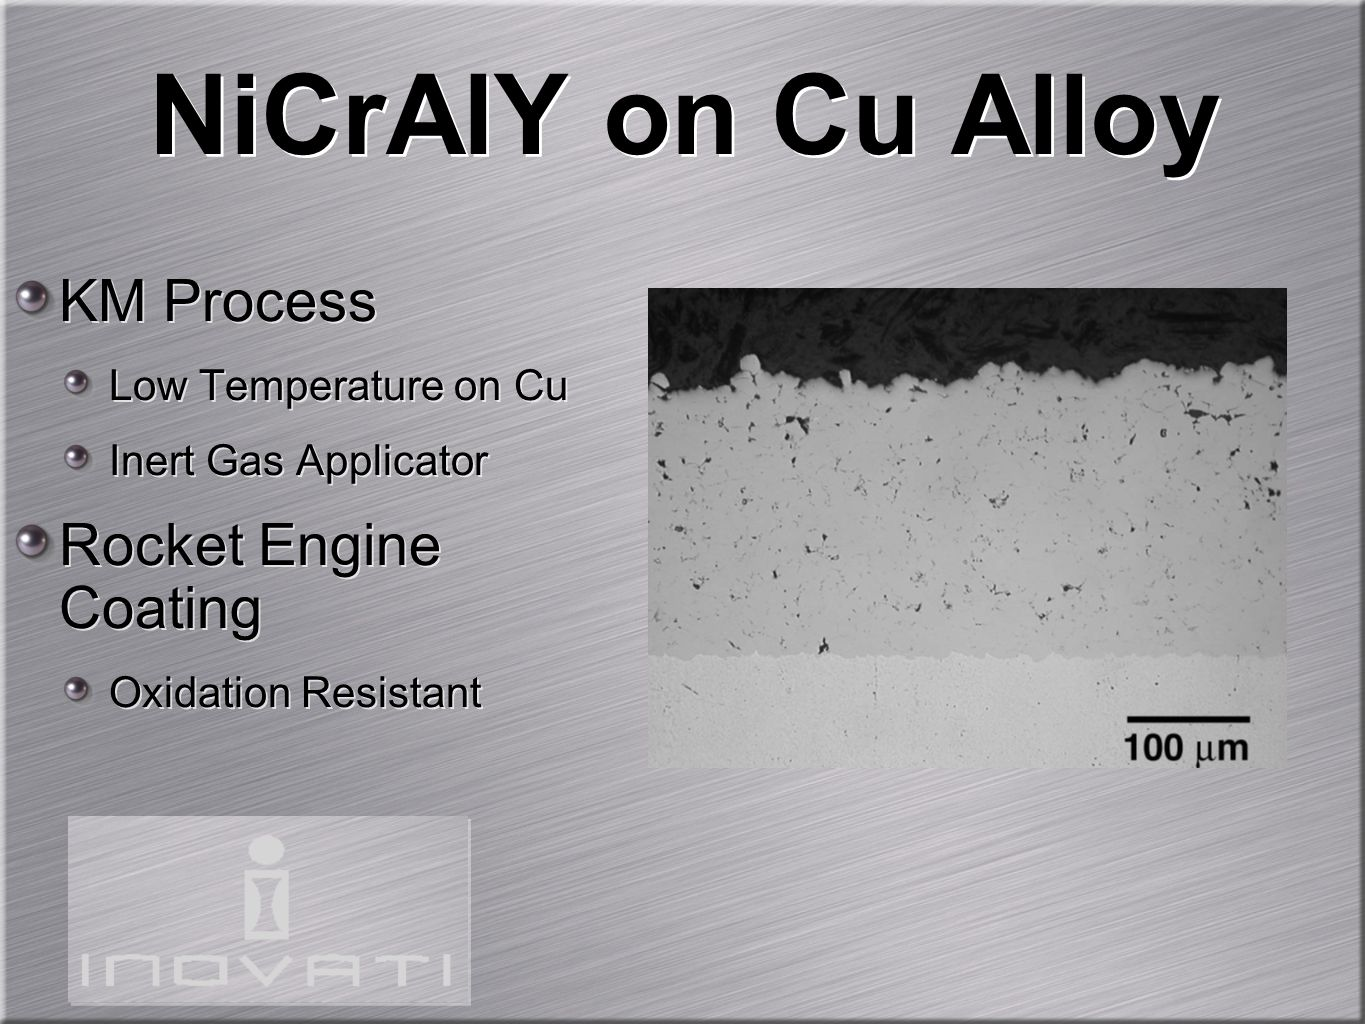 NiCrAlY on Cu Alloy KM Process Rocket Engine Coating